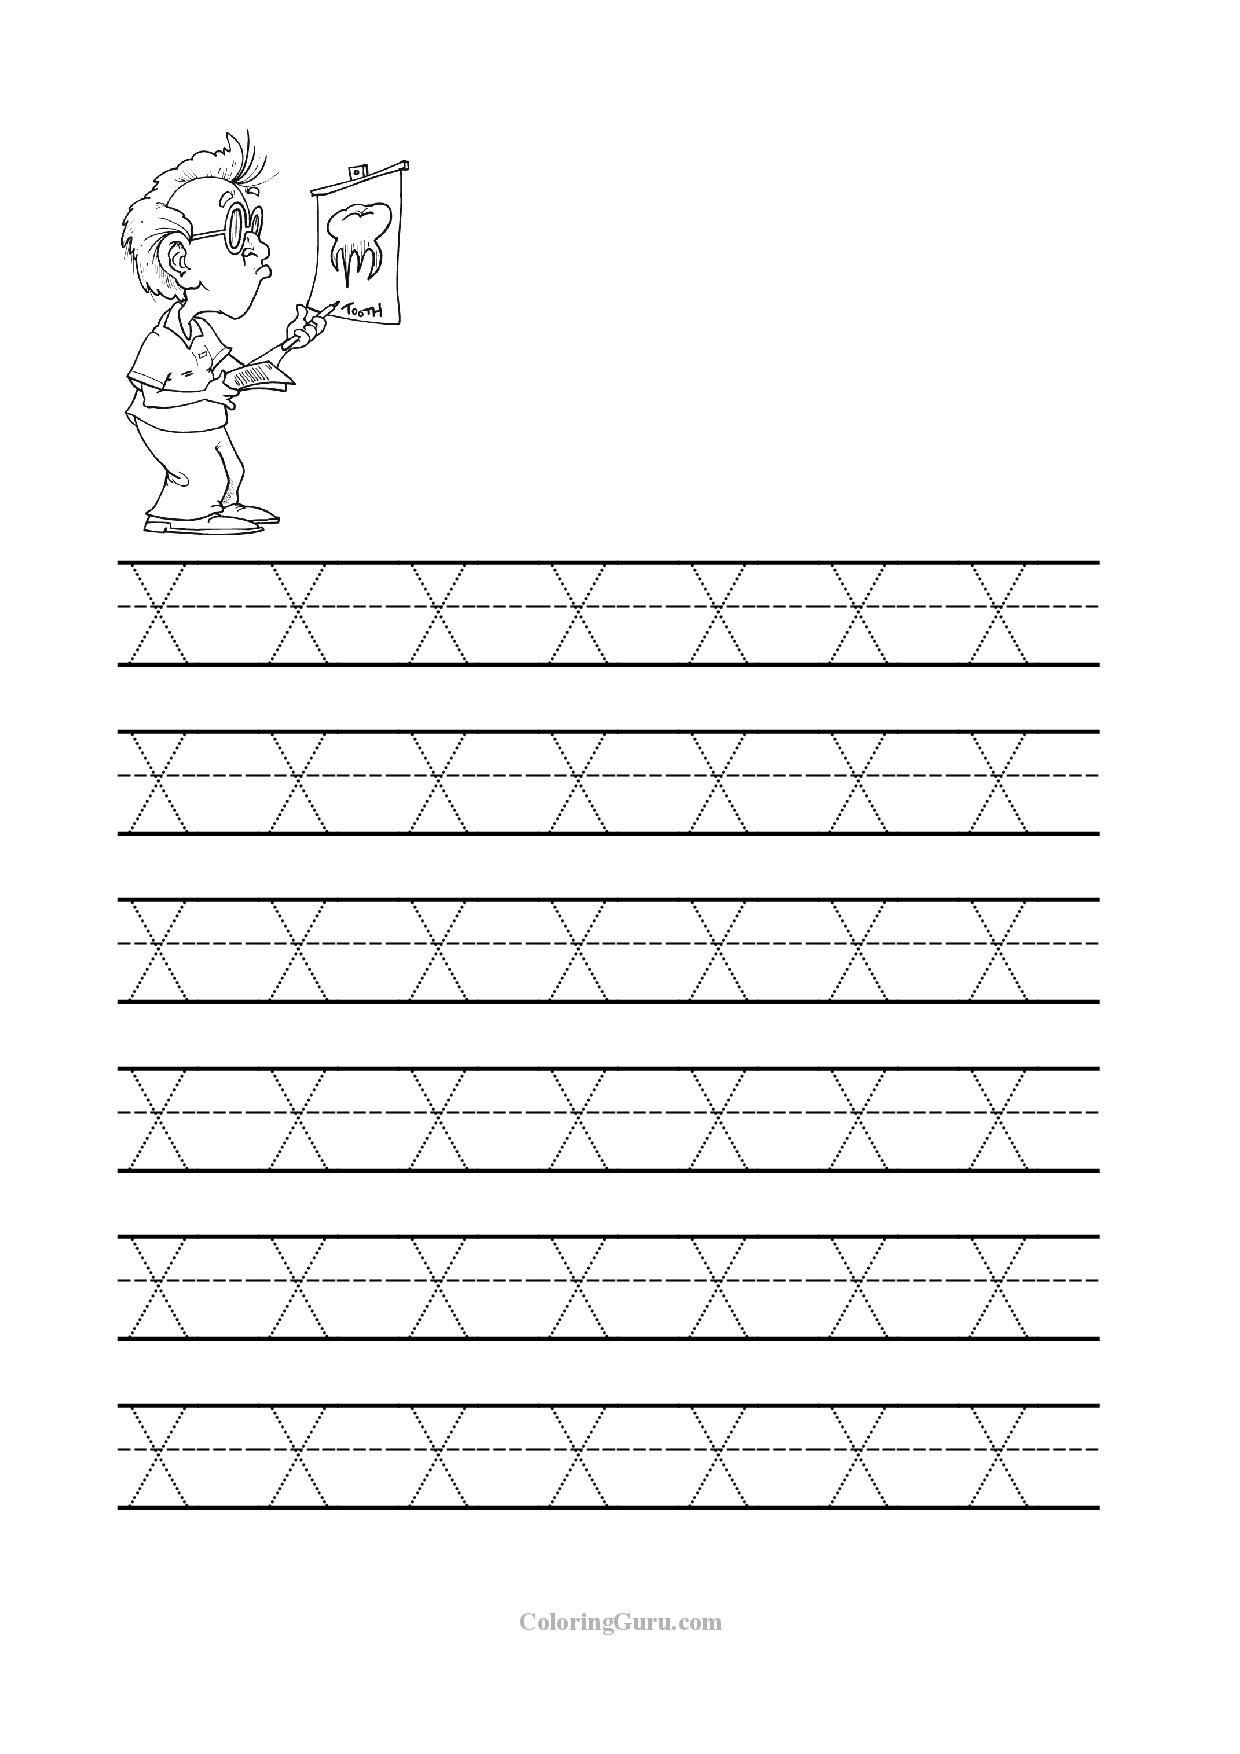 Letter X Worksheets for Preschoolers Free Printable Tracing Letter X Worksheets for Preschool